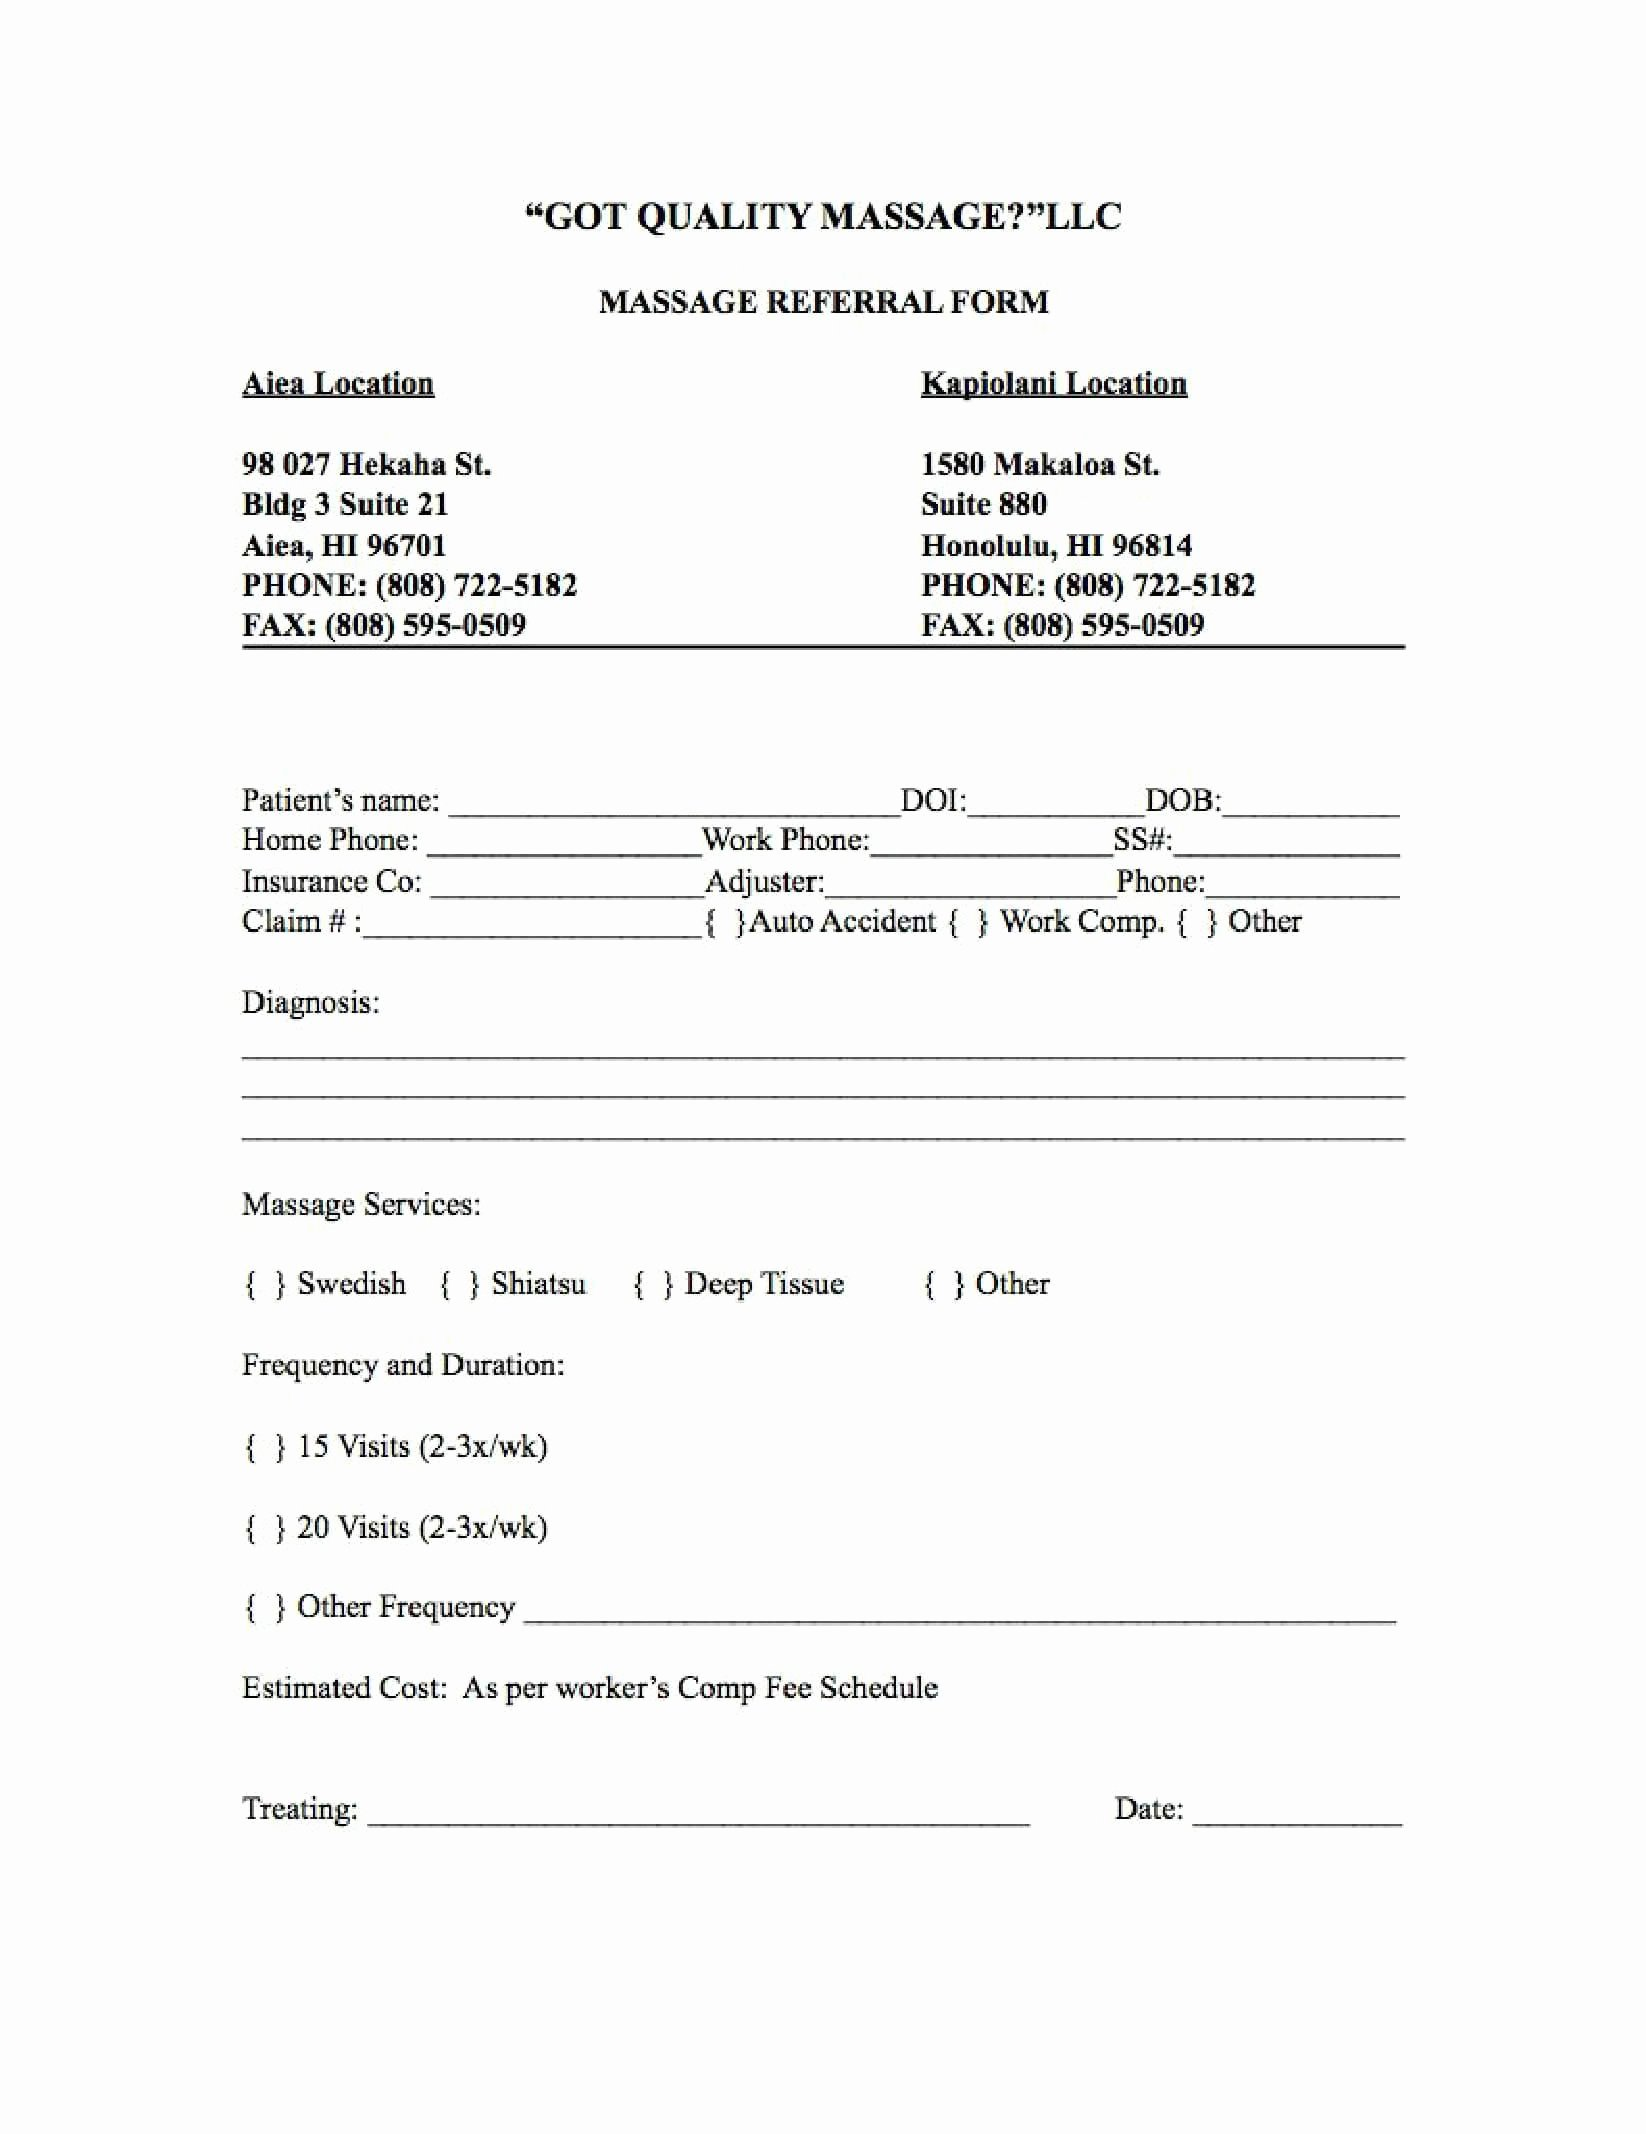 Customer Referral form Inspirational Got Quality Massage Llc